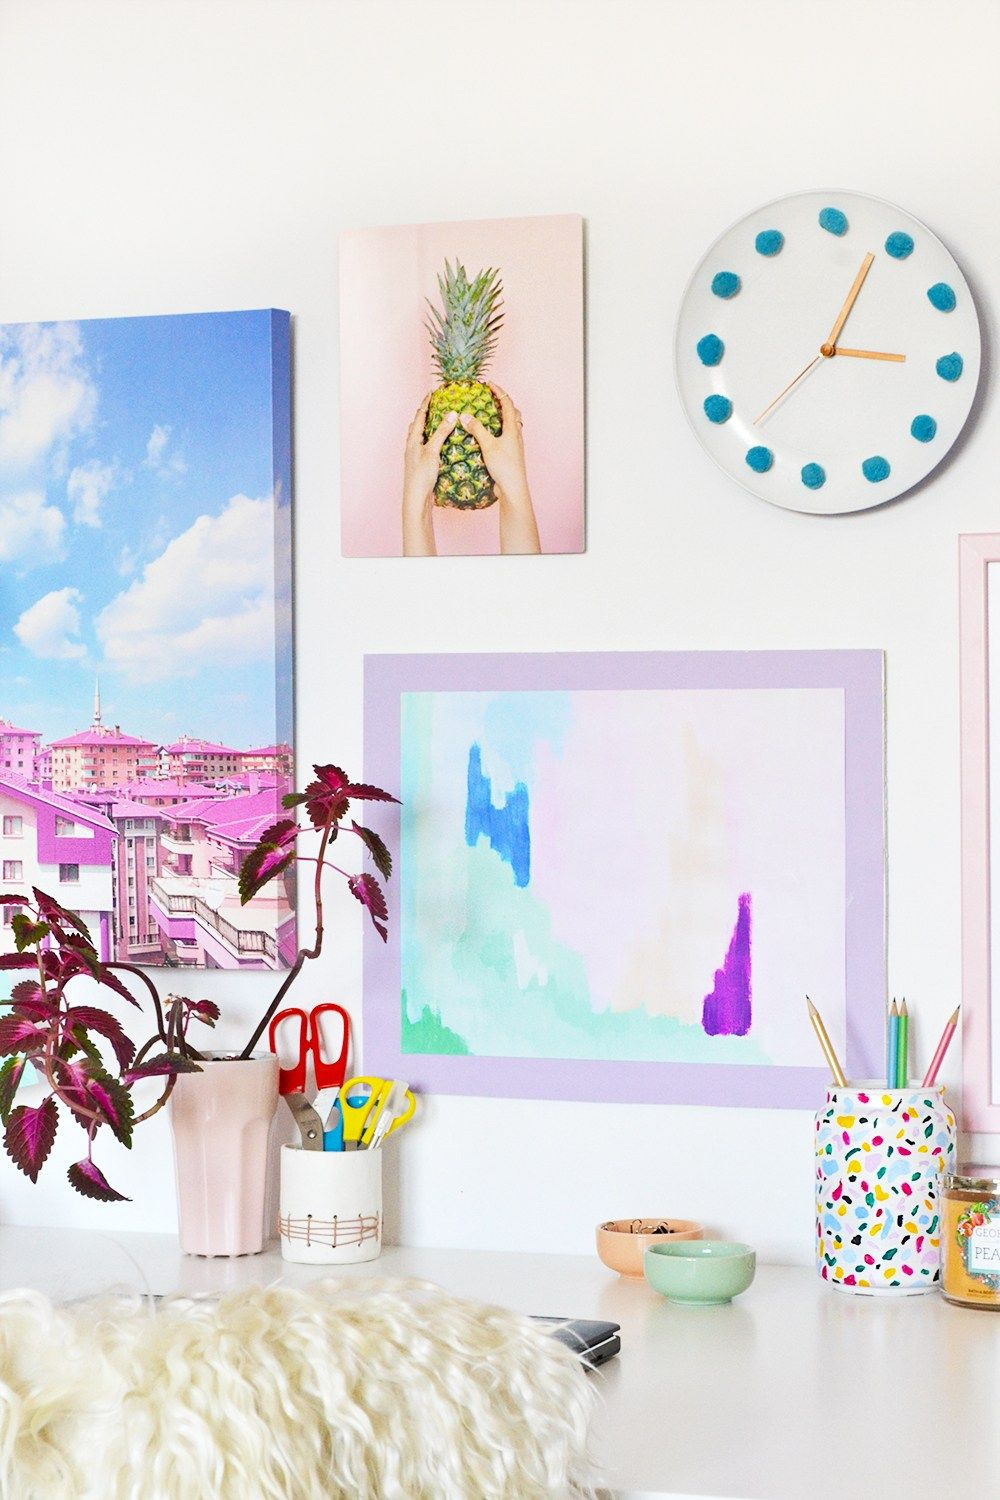 DIY Colorful Poster Frame + Wall Gallery with Mixbook | Awesome DIY ...